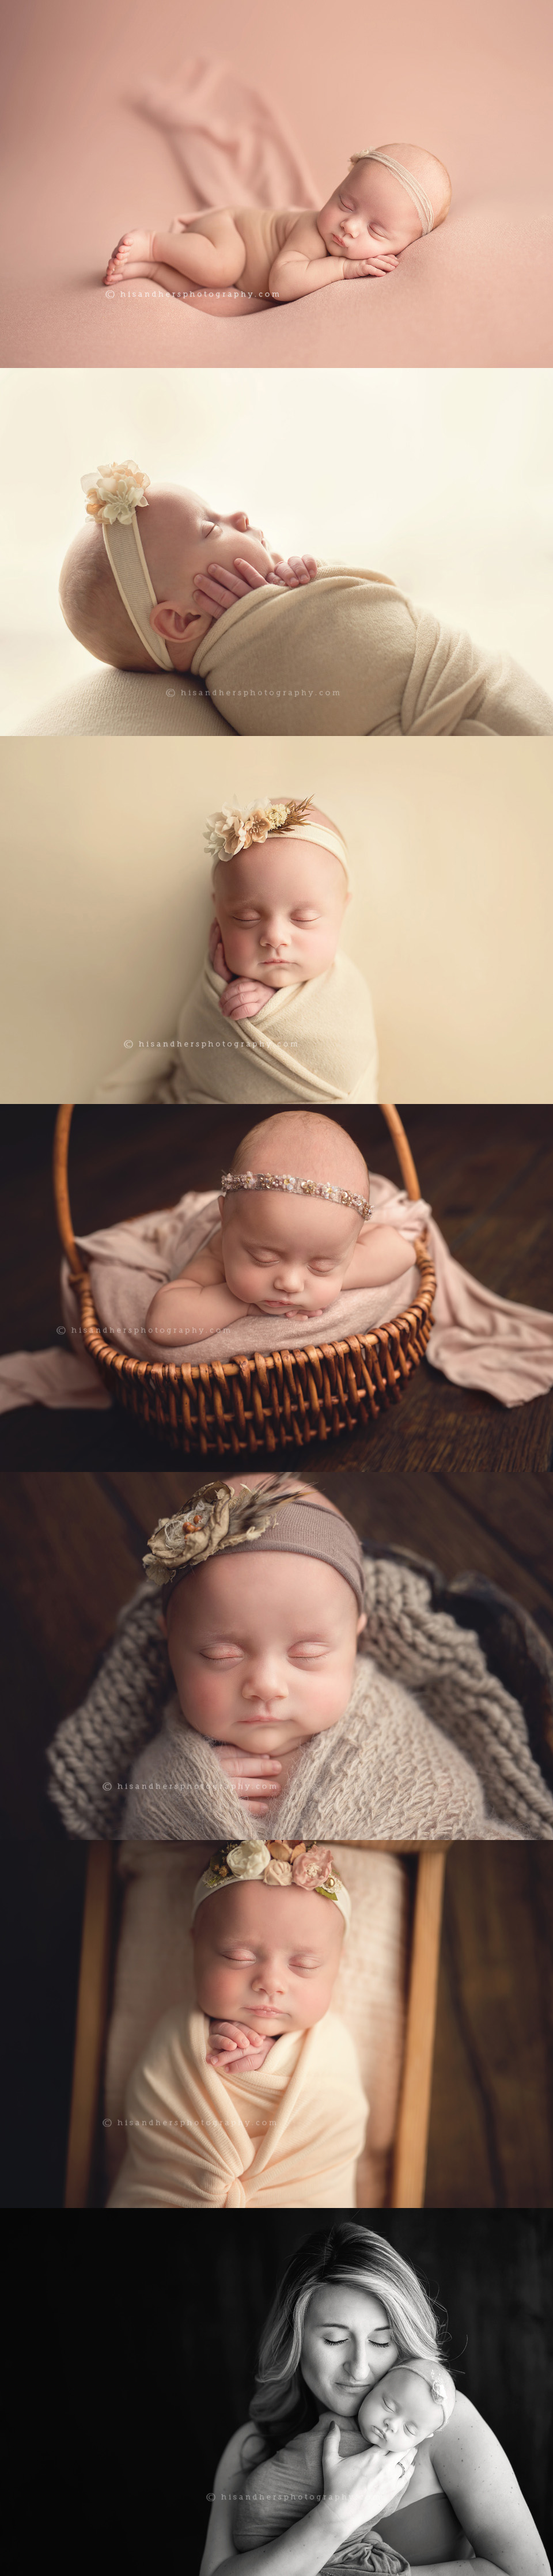 des moines iowa newborn photographer baby photography best iowa newborn photographer